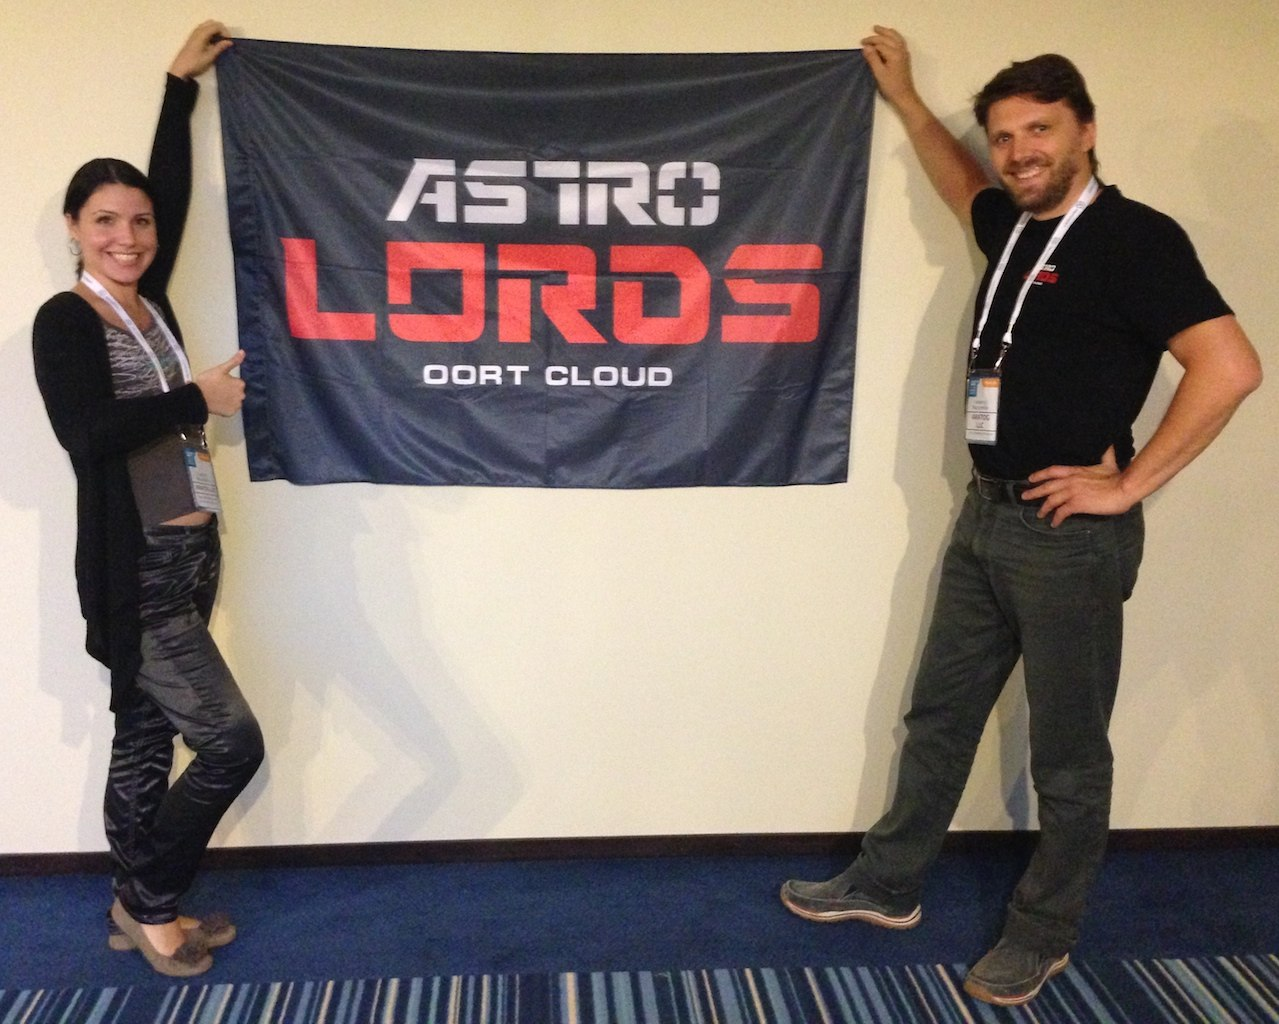 Astro Lords flag on wnconf conference